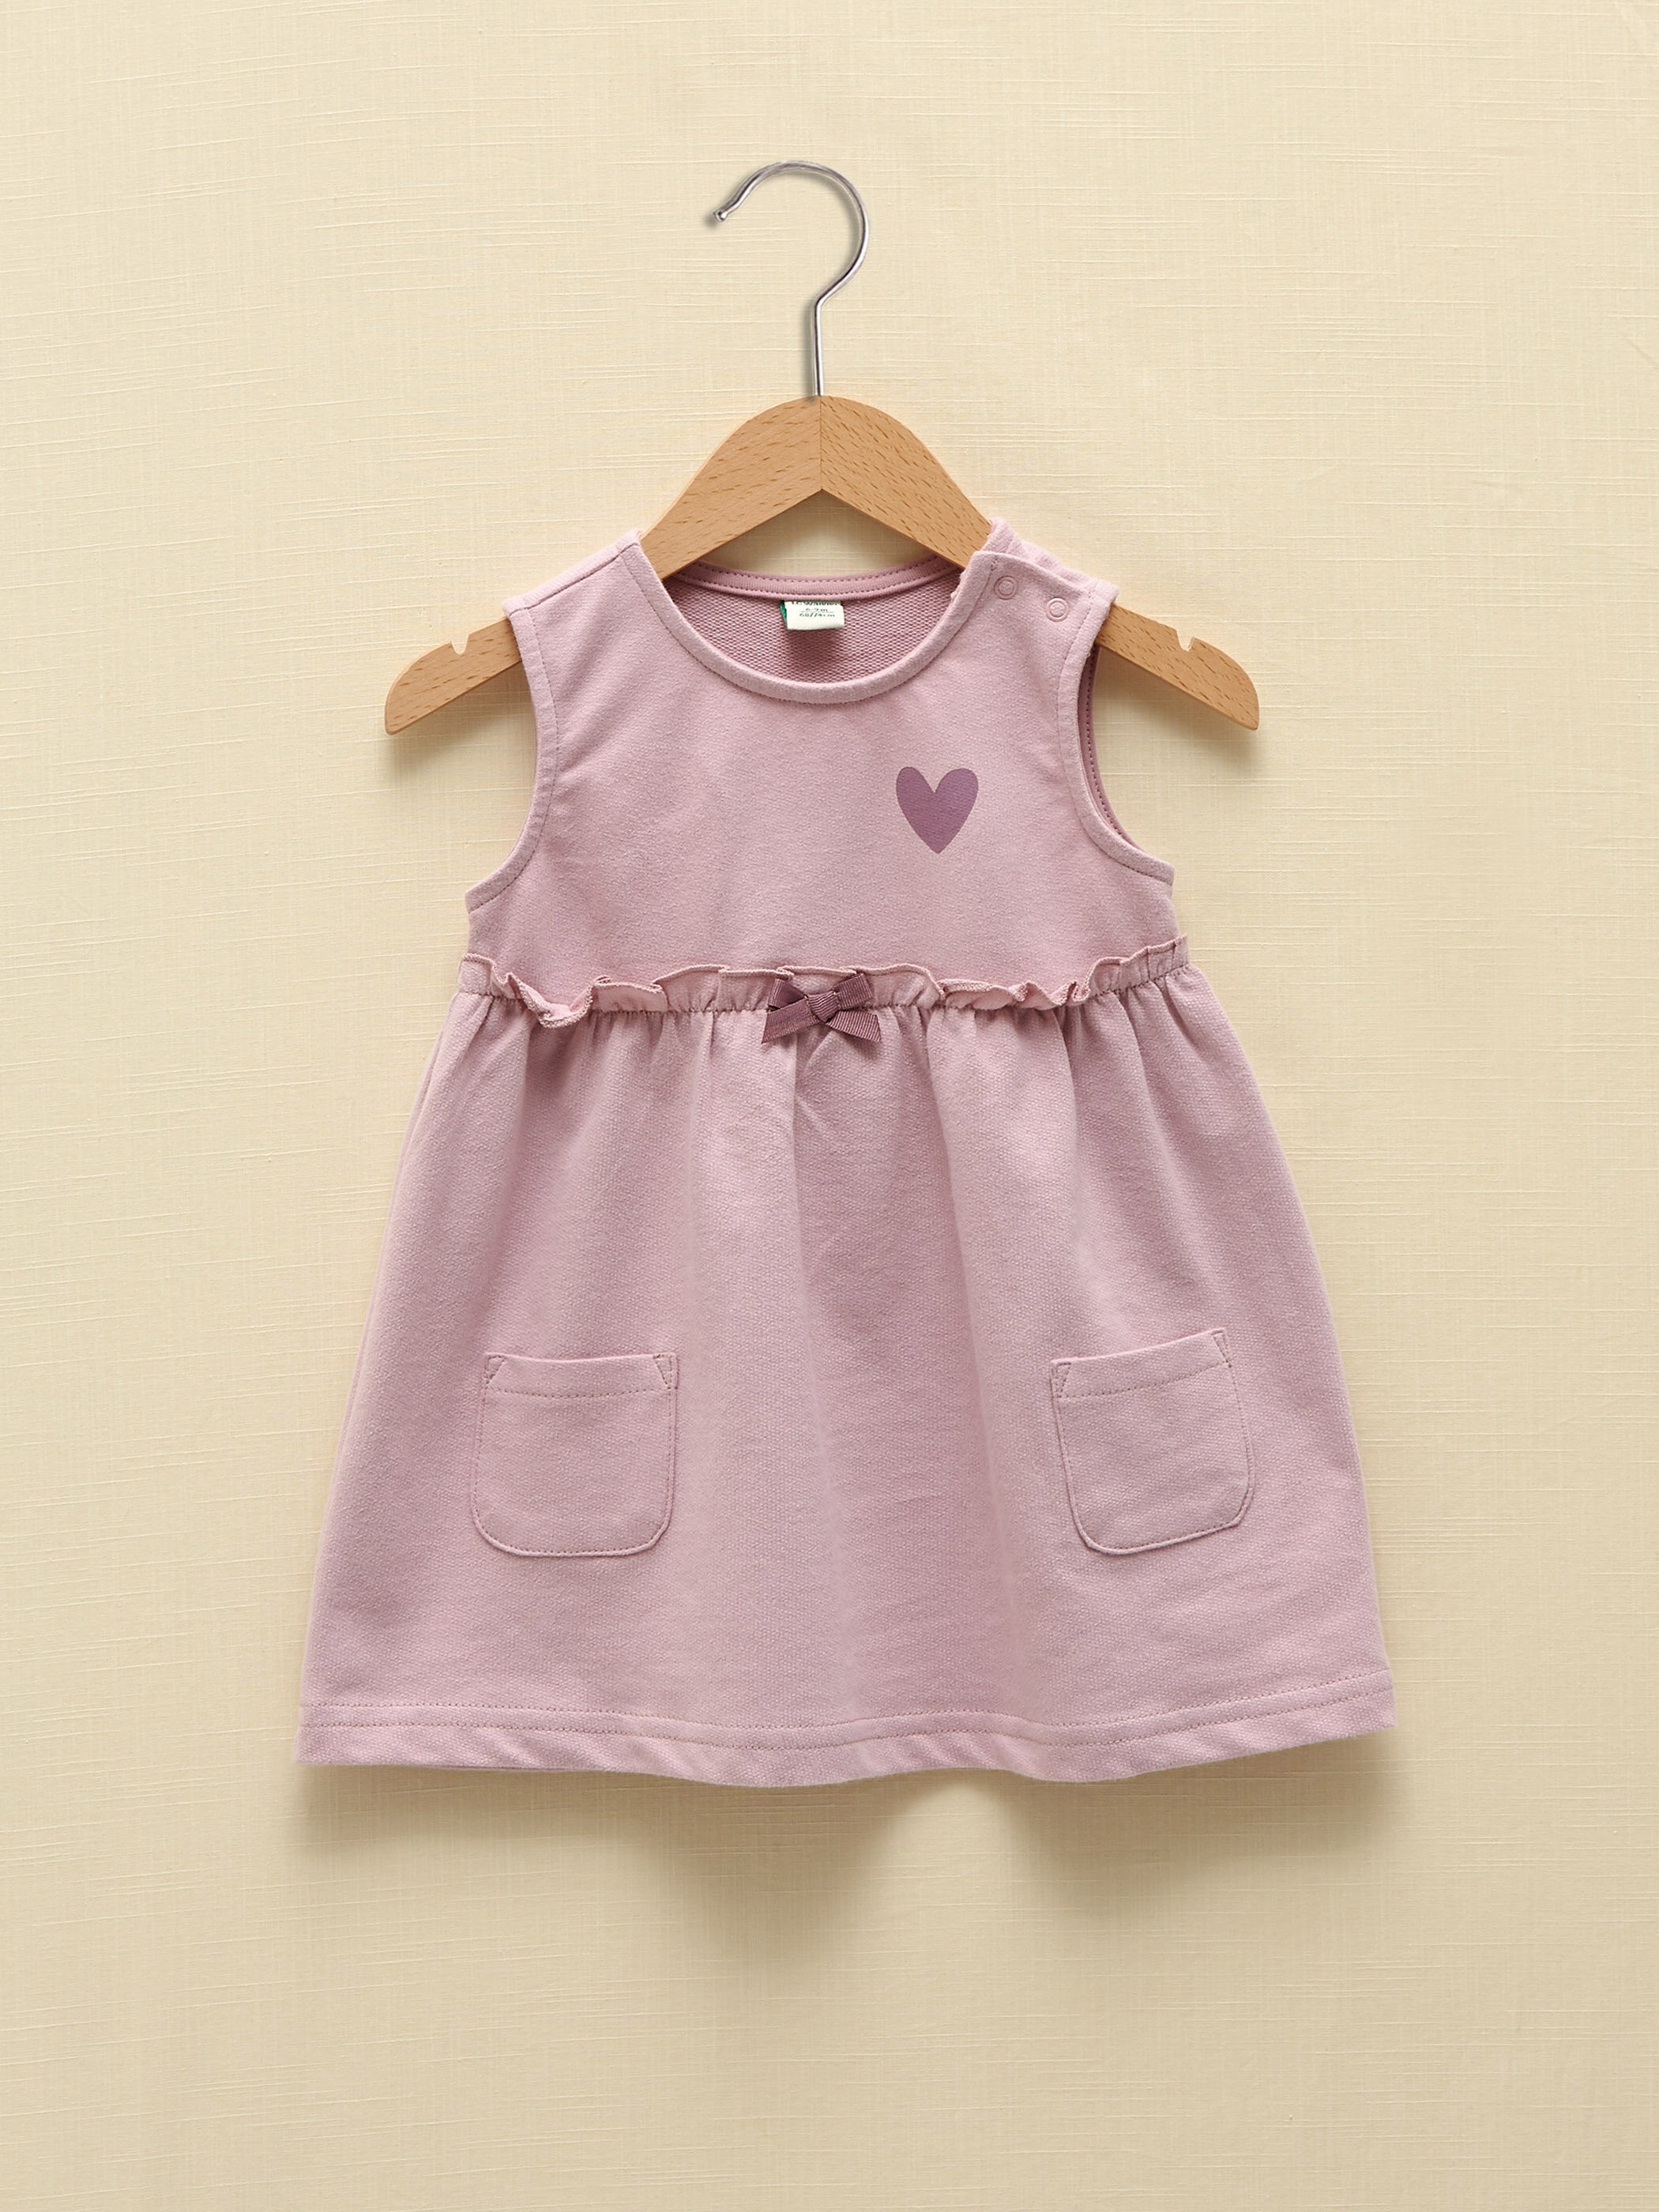 LILAC - Crew Neck Sleeveless Organic Cotton Baby Girl Dress - S1CO64Z1